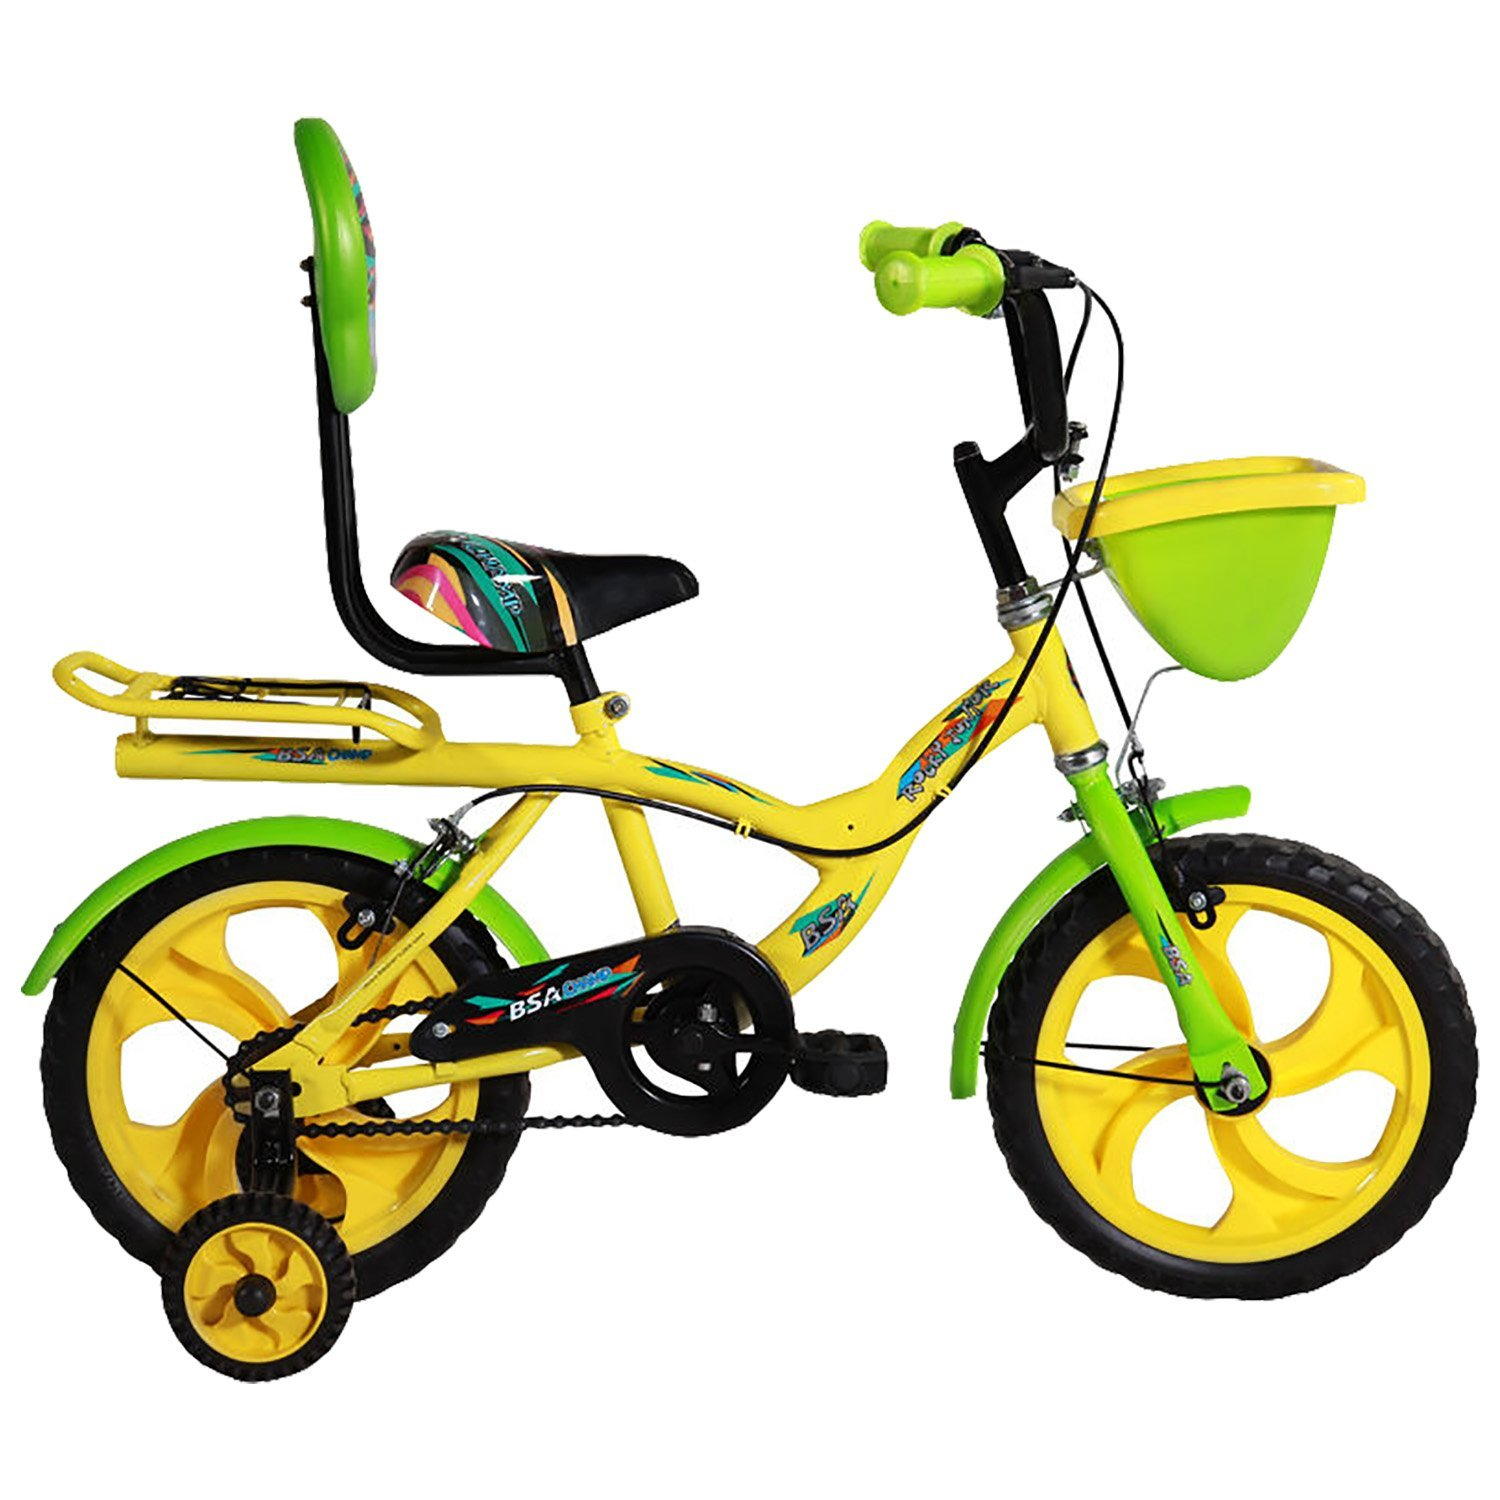 c68b25e07fe best cycle brands for kids in india Archives - WhatBestInIndia.com